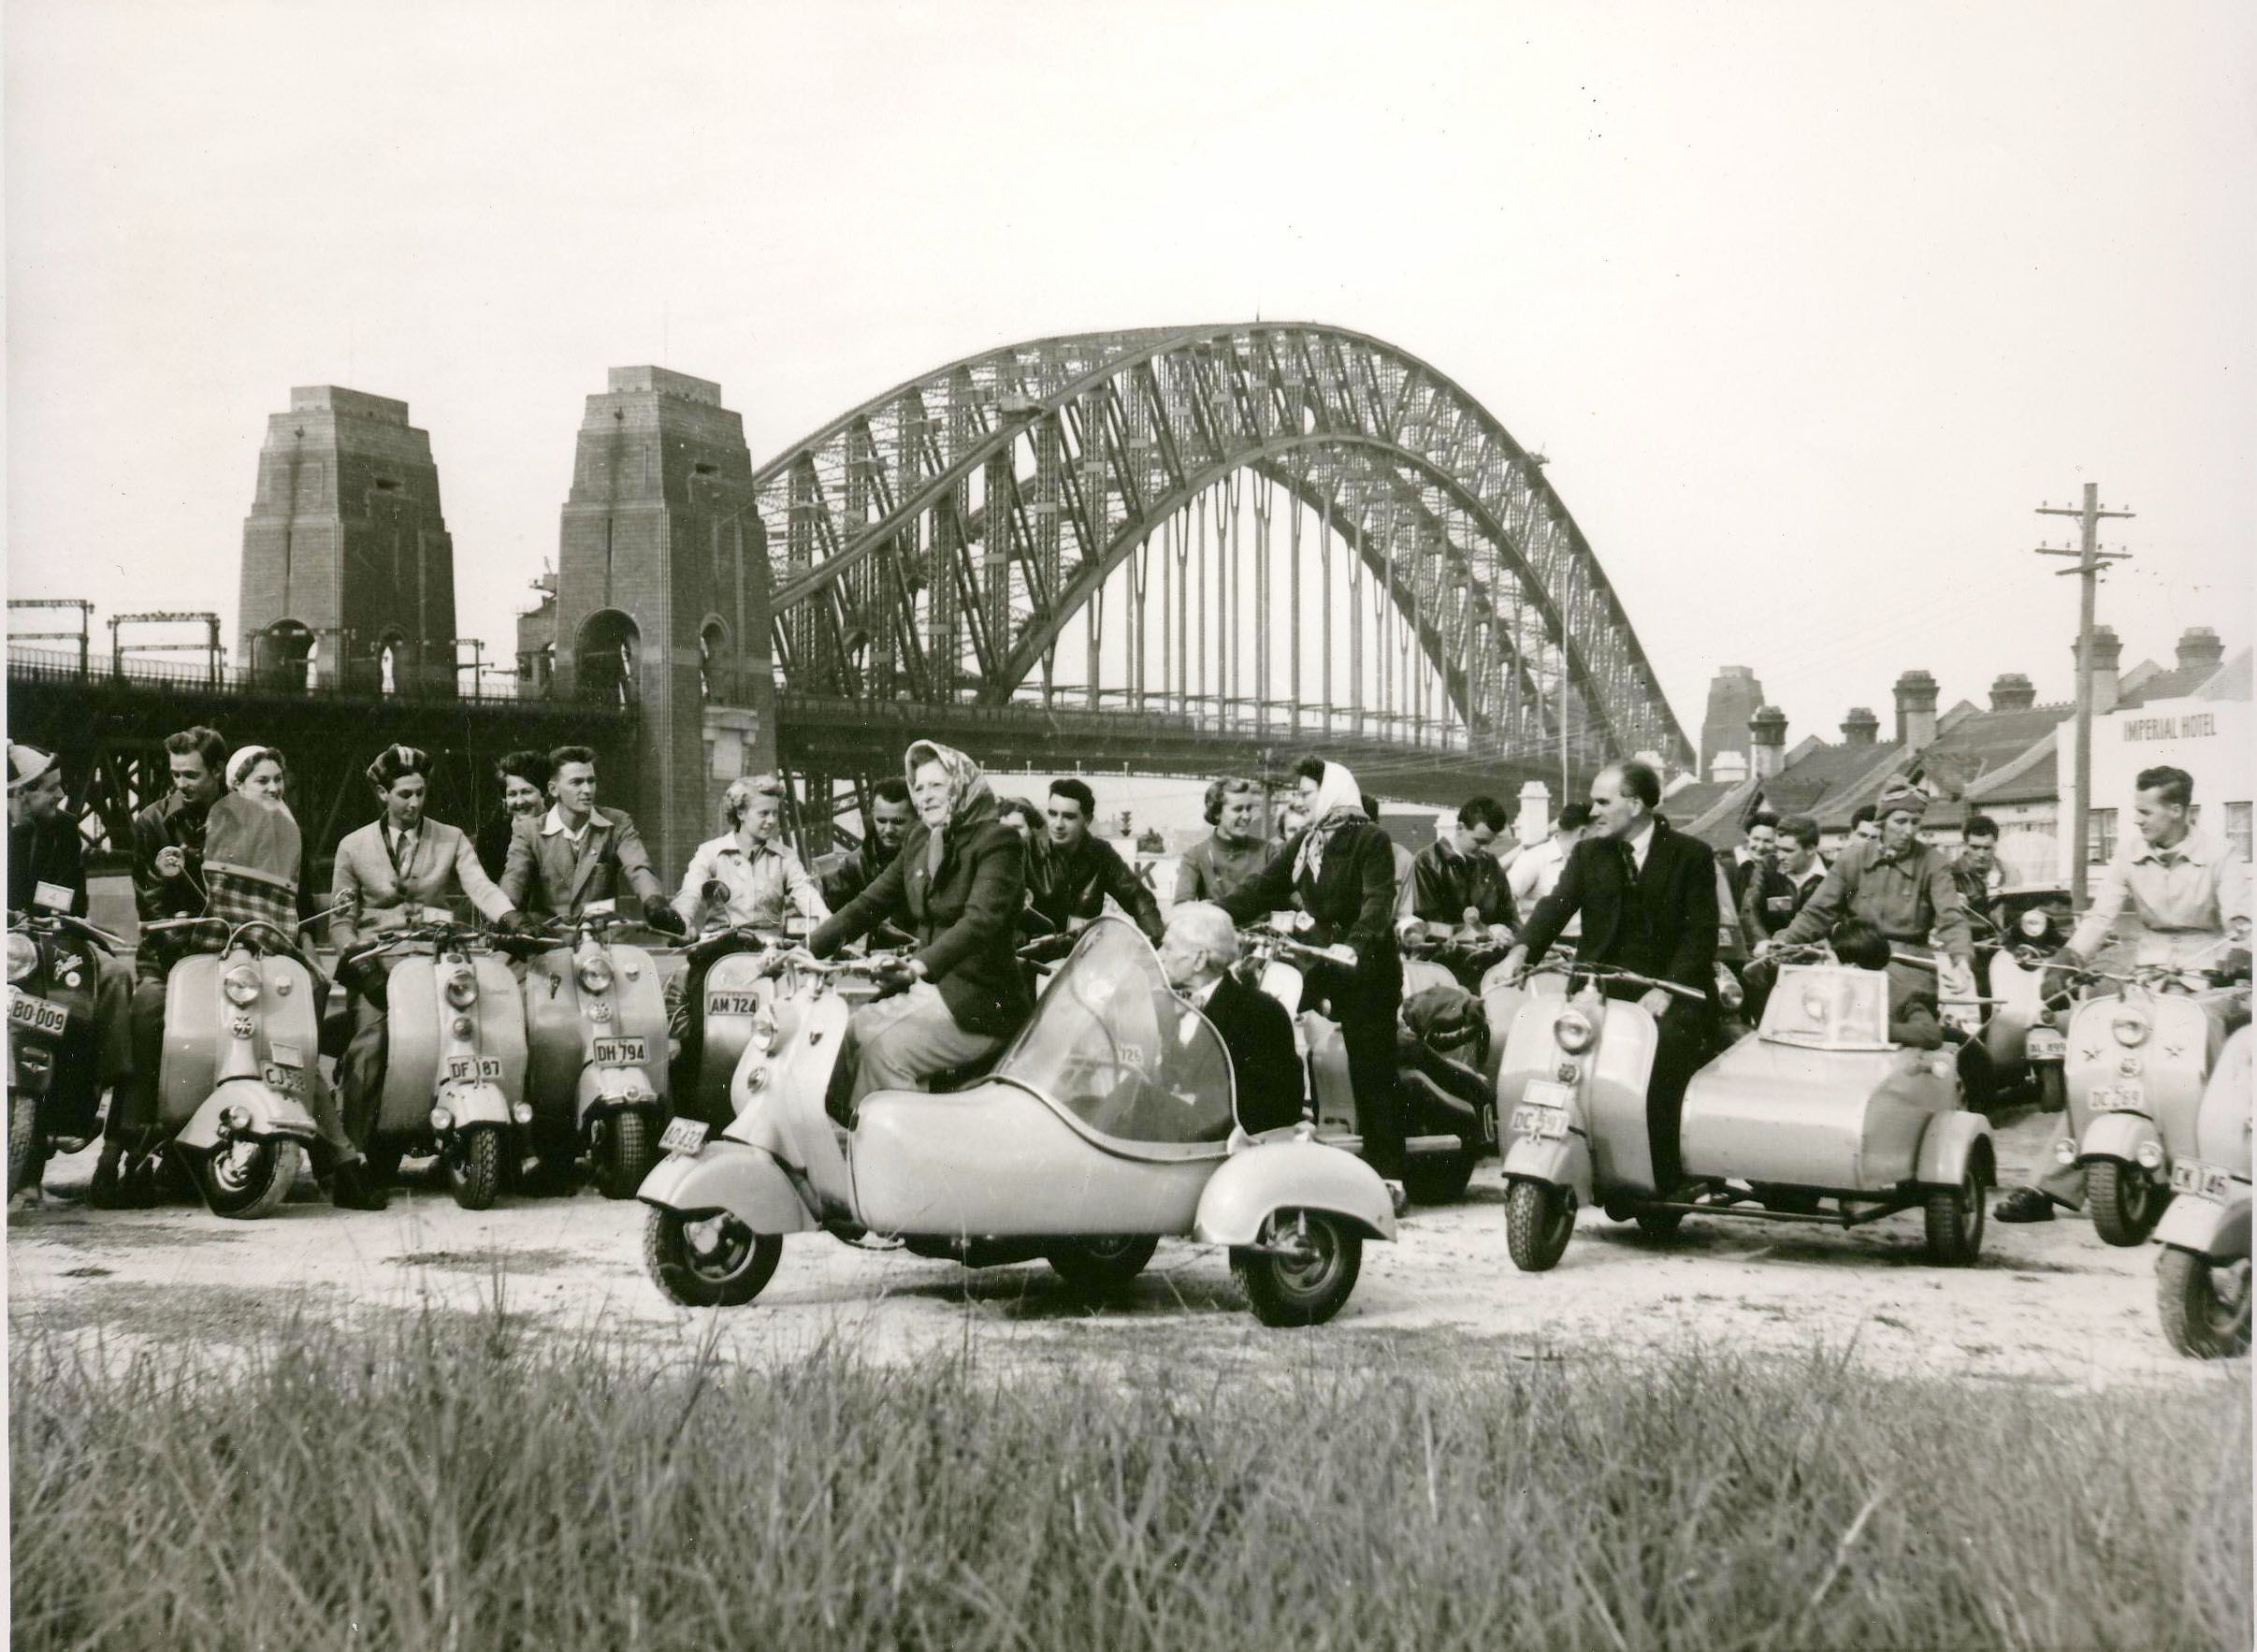 The Sydney Motor Scooter Club were setting out on one of their regular weekend outings.  August 1955.  Photo by Sue Paton